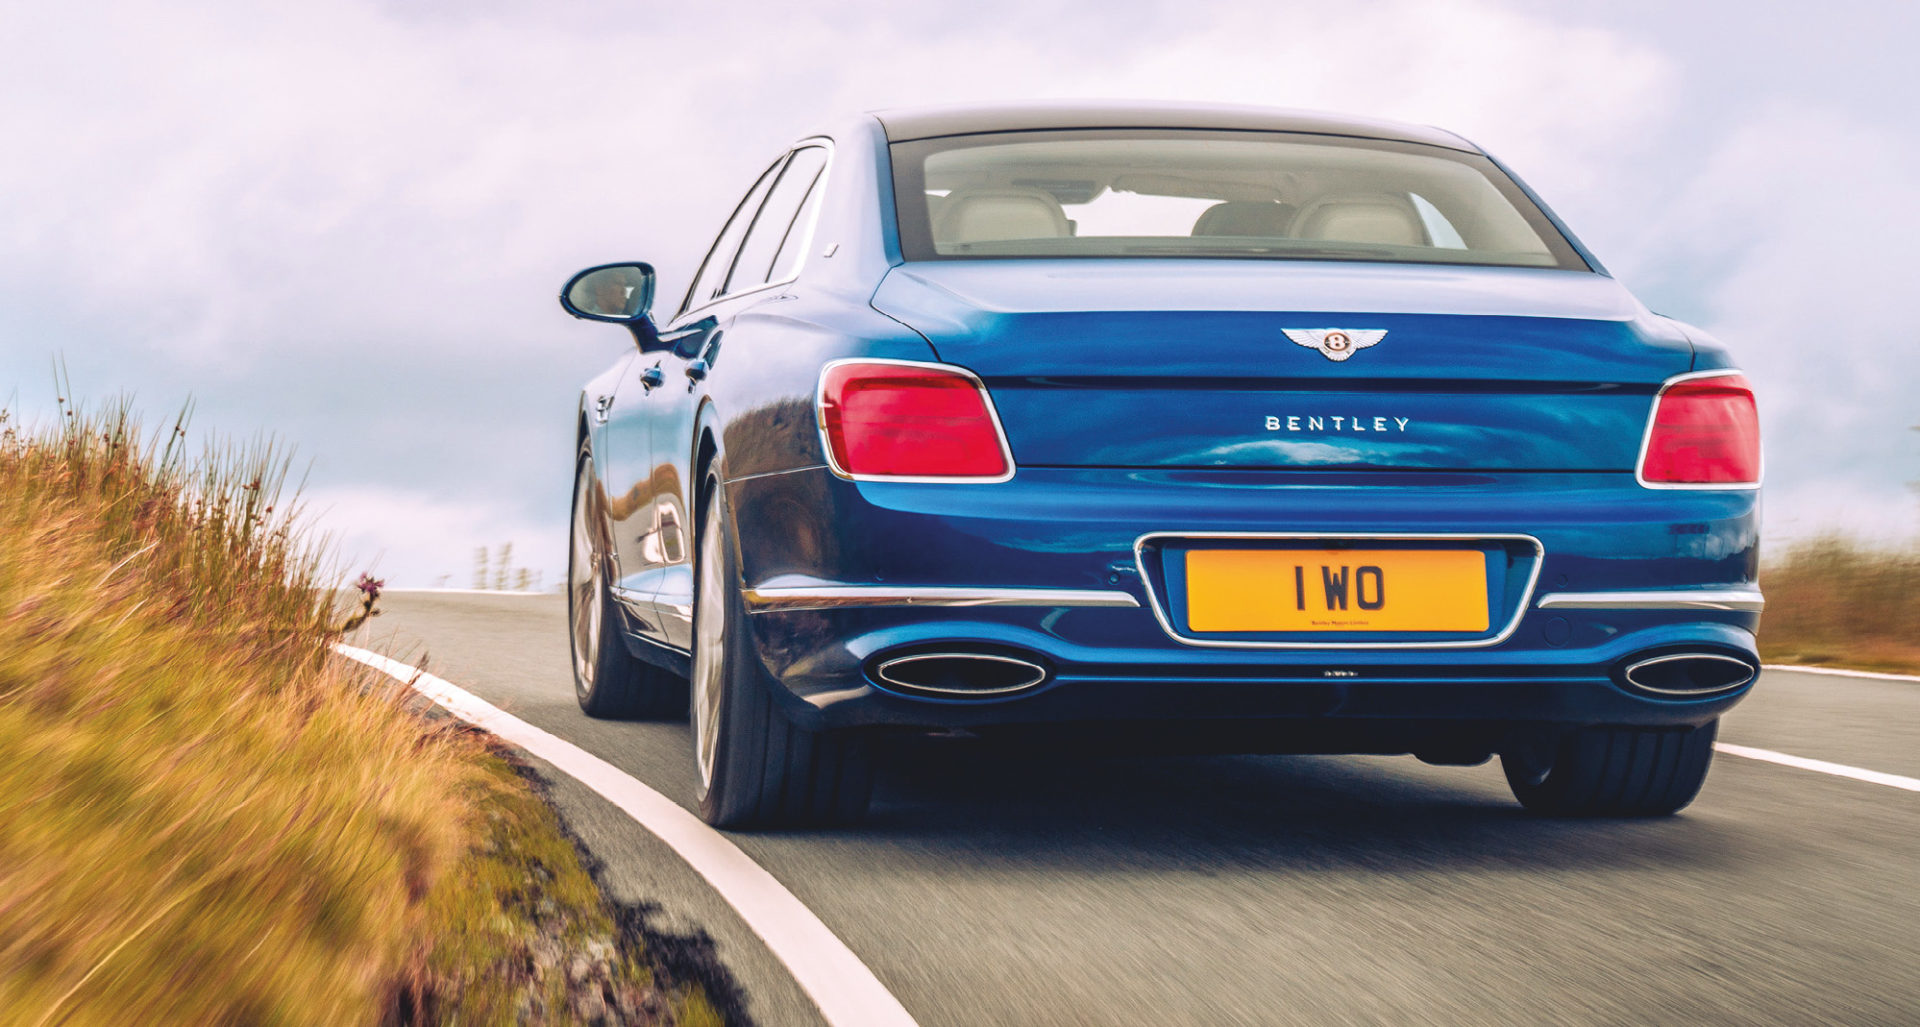 Aside from a small grumble about the gearbox and switchgear, the Flying Spur is superb